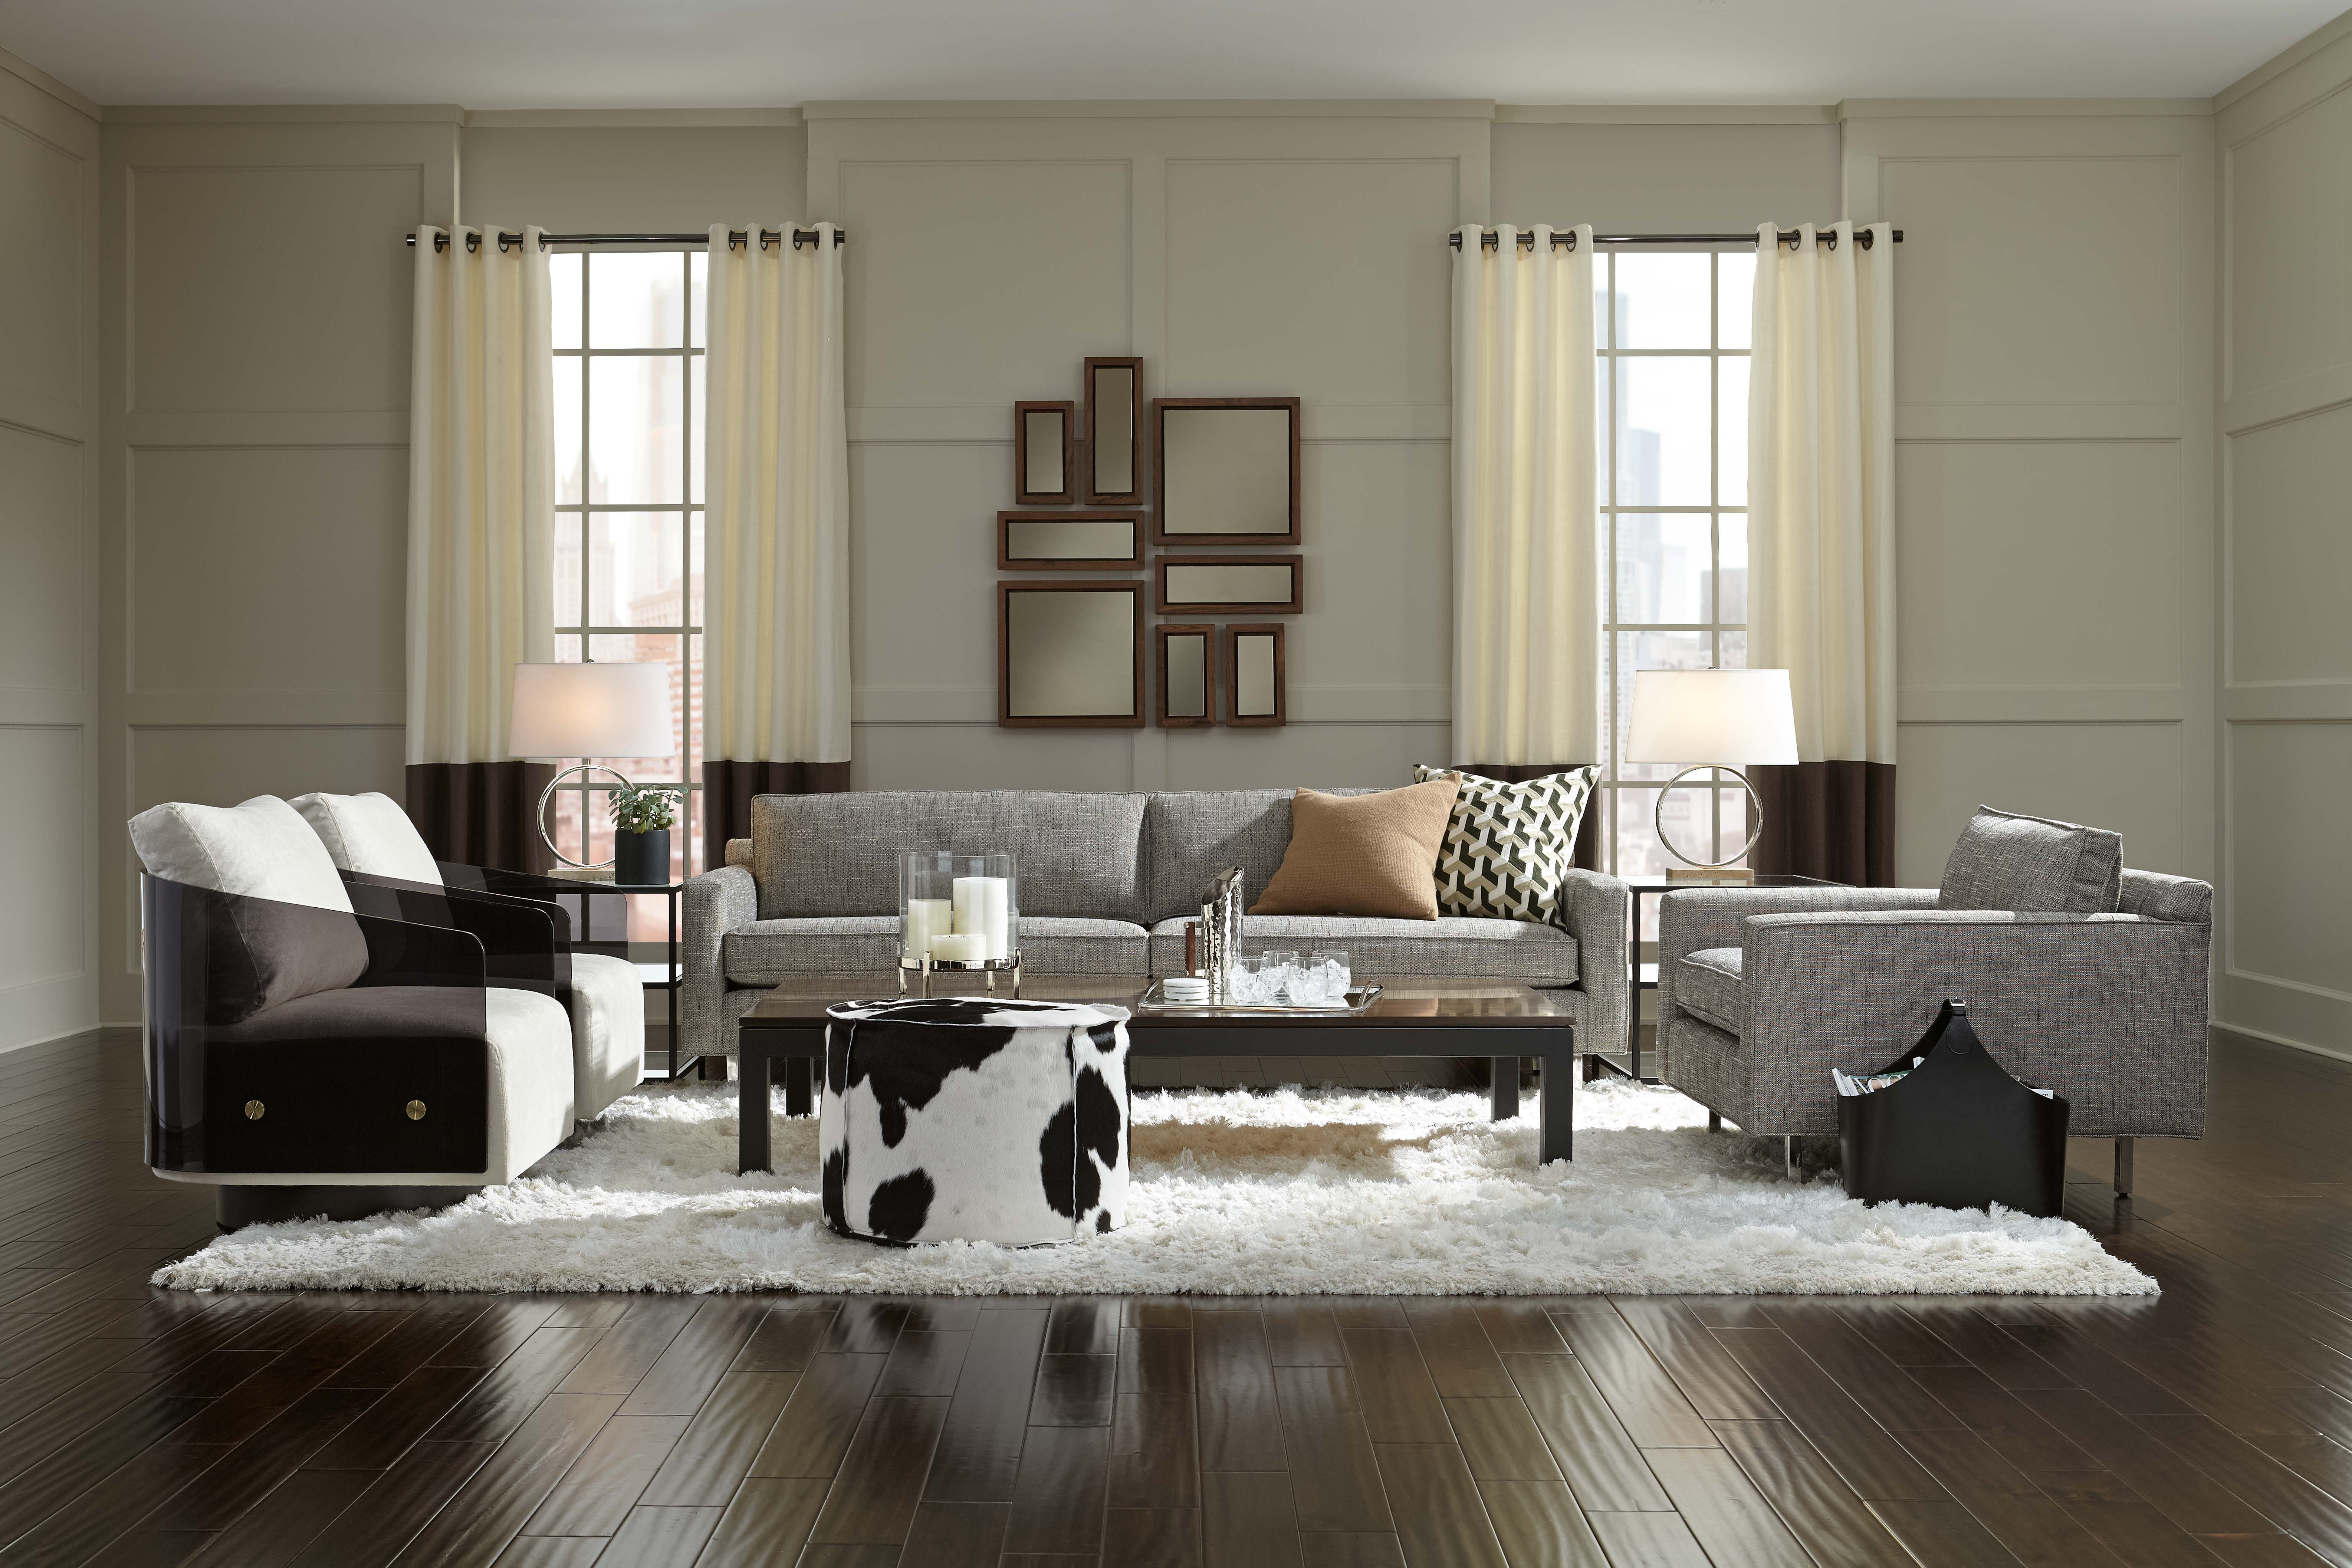 For The Urban Cowboy A Retreat That Blends Different Influences And Backgrounds With Chic City Style Living Rooms Living Room Decor Dining Bench Living